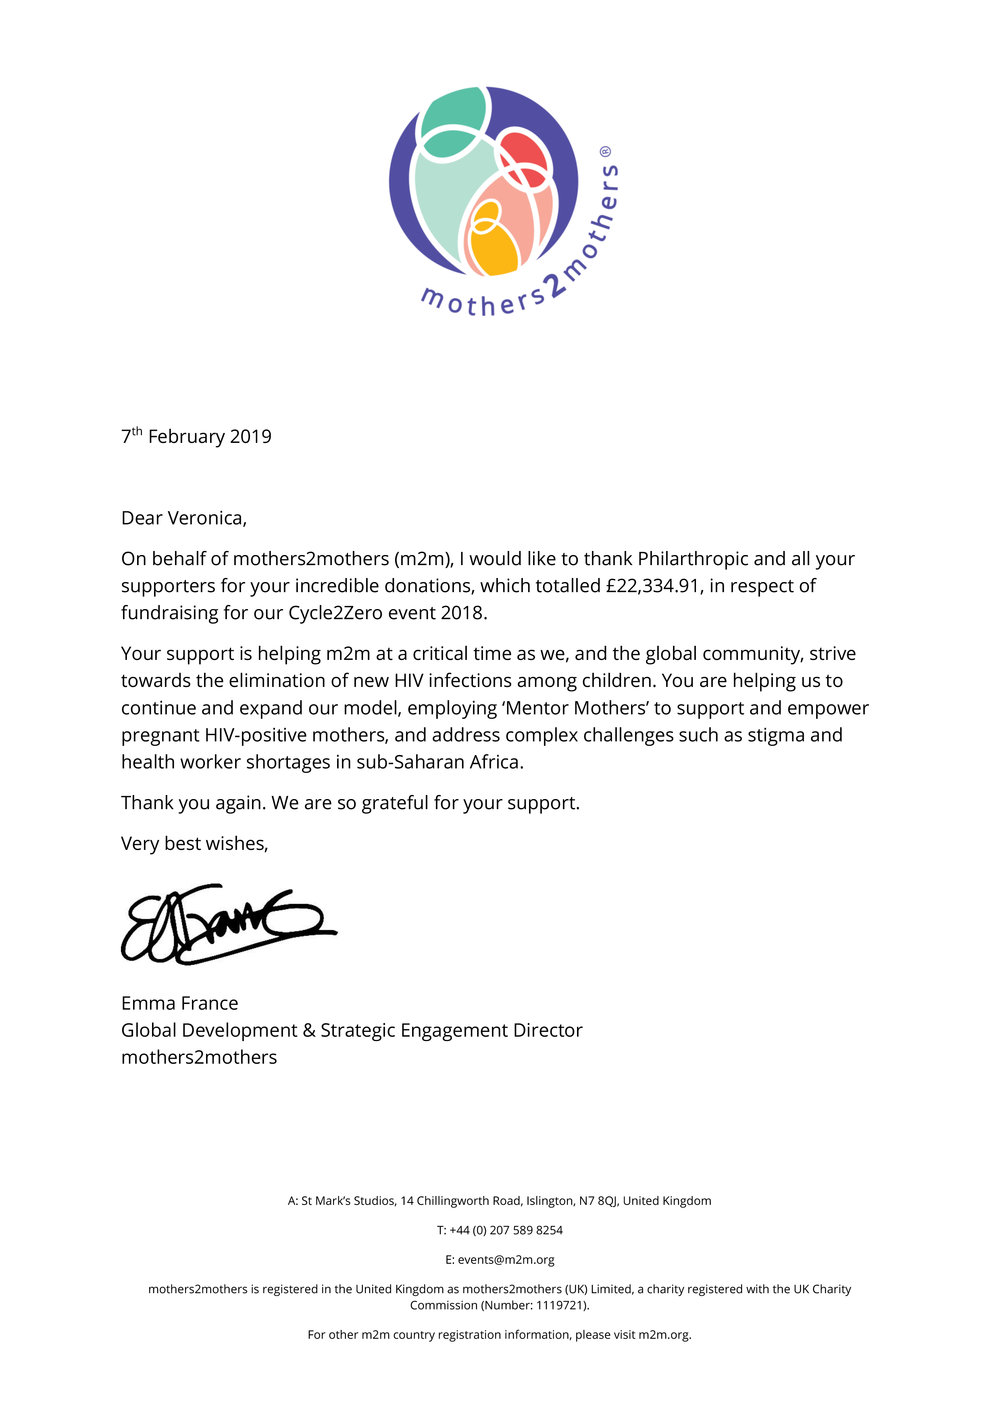 mothers2mothers-donation-letter.jpg